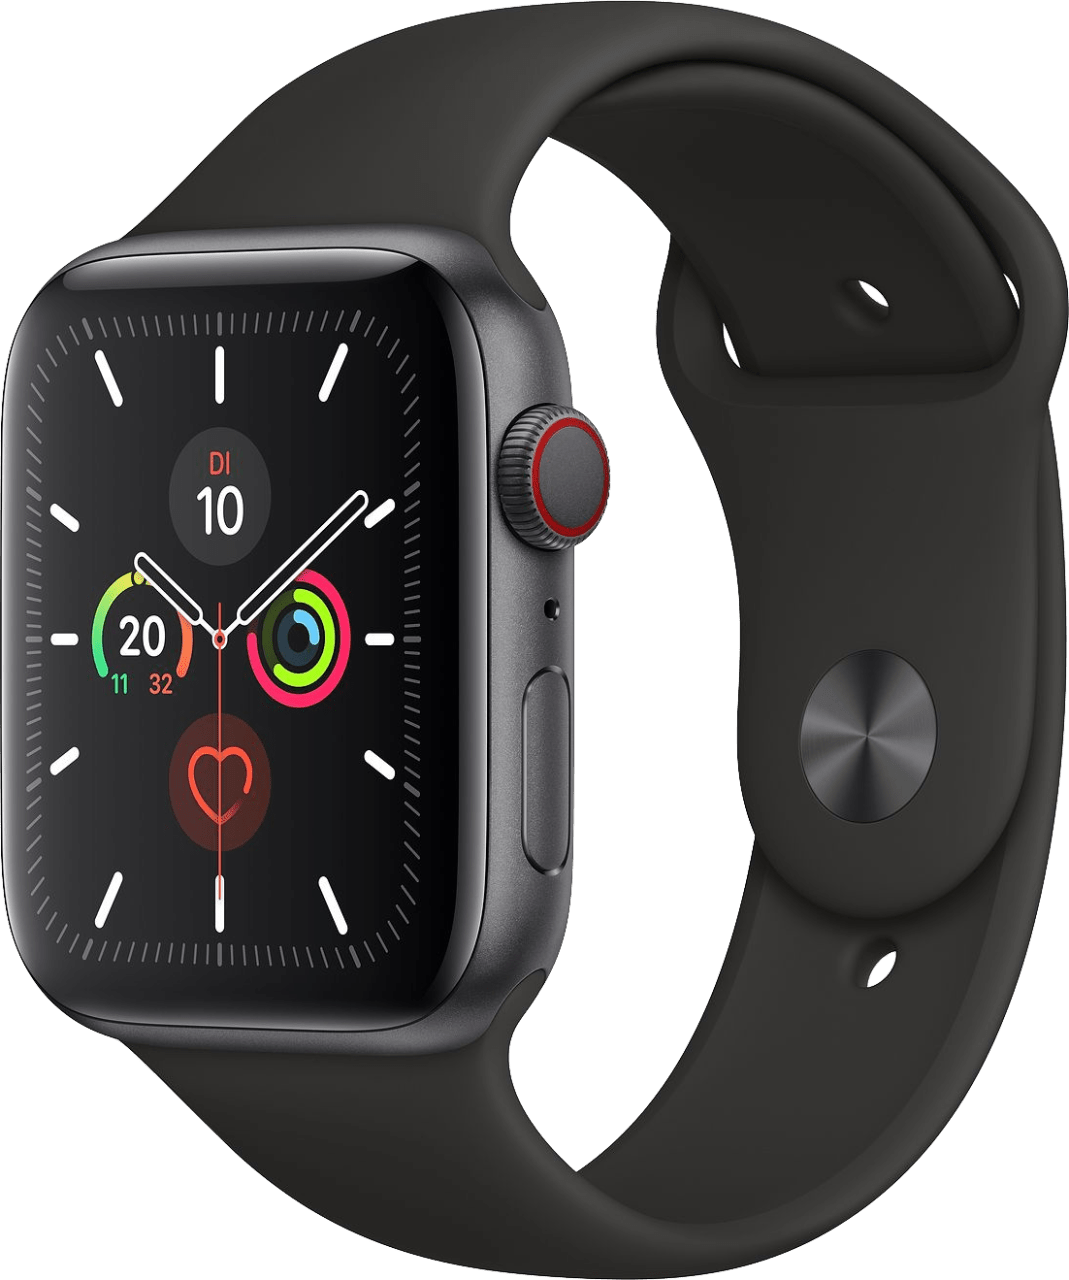 Schwarz Apple Watch Series 5 GPS + Cellular, 44mm.2